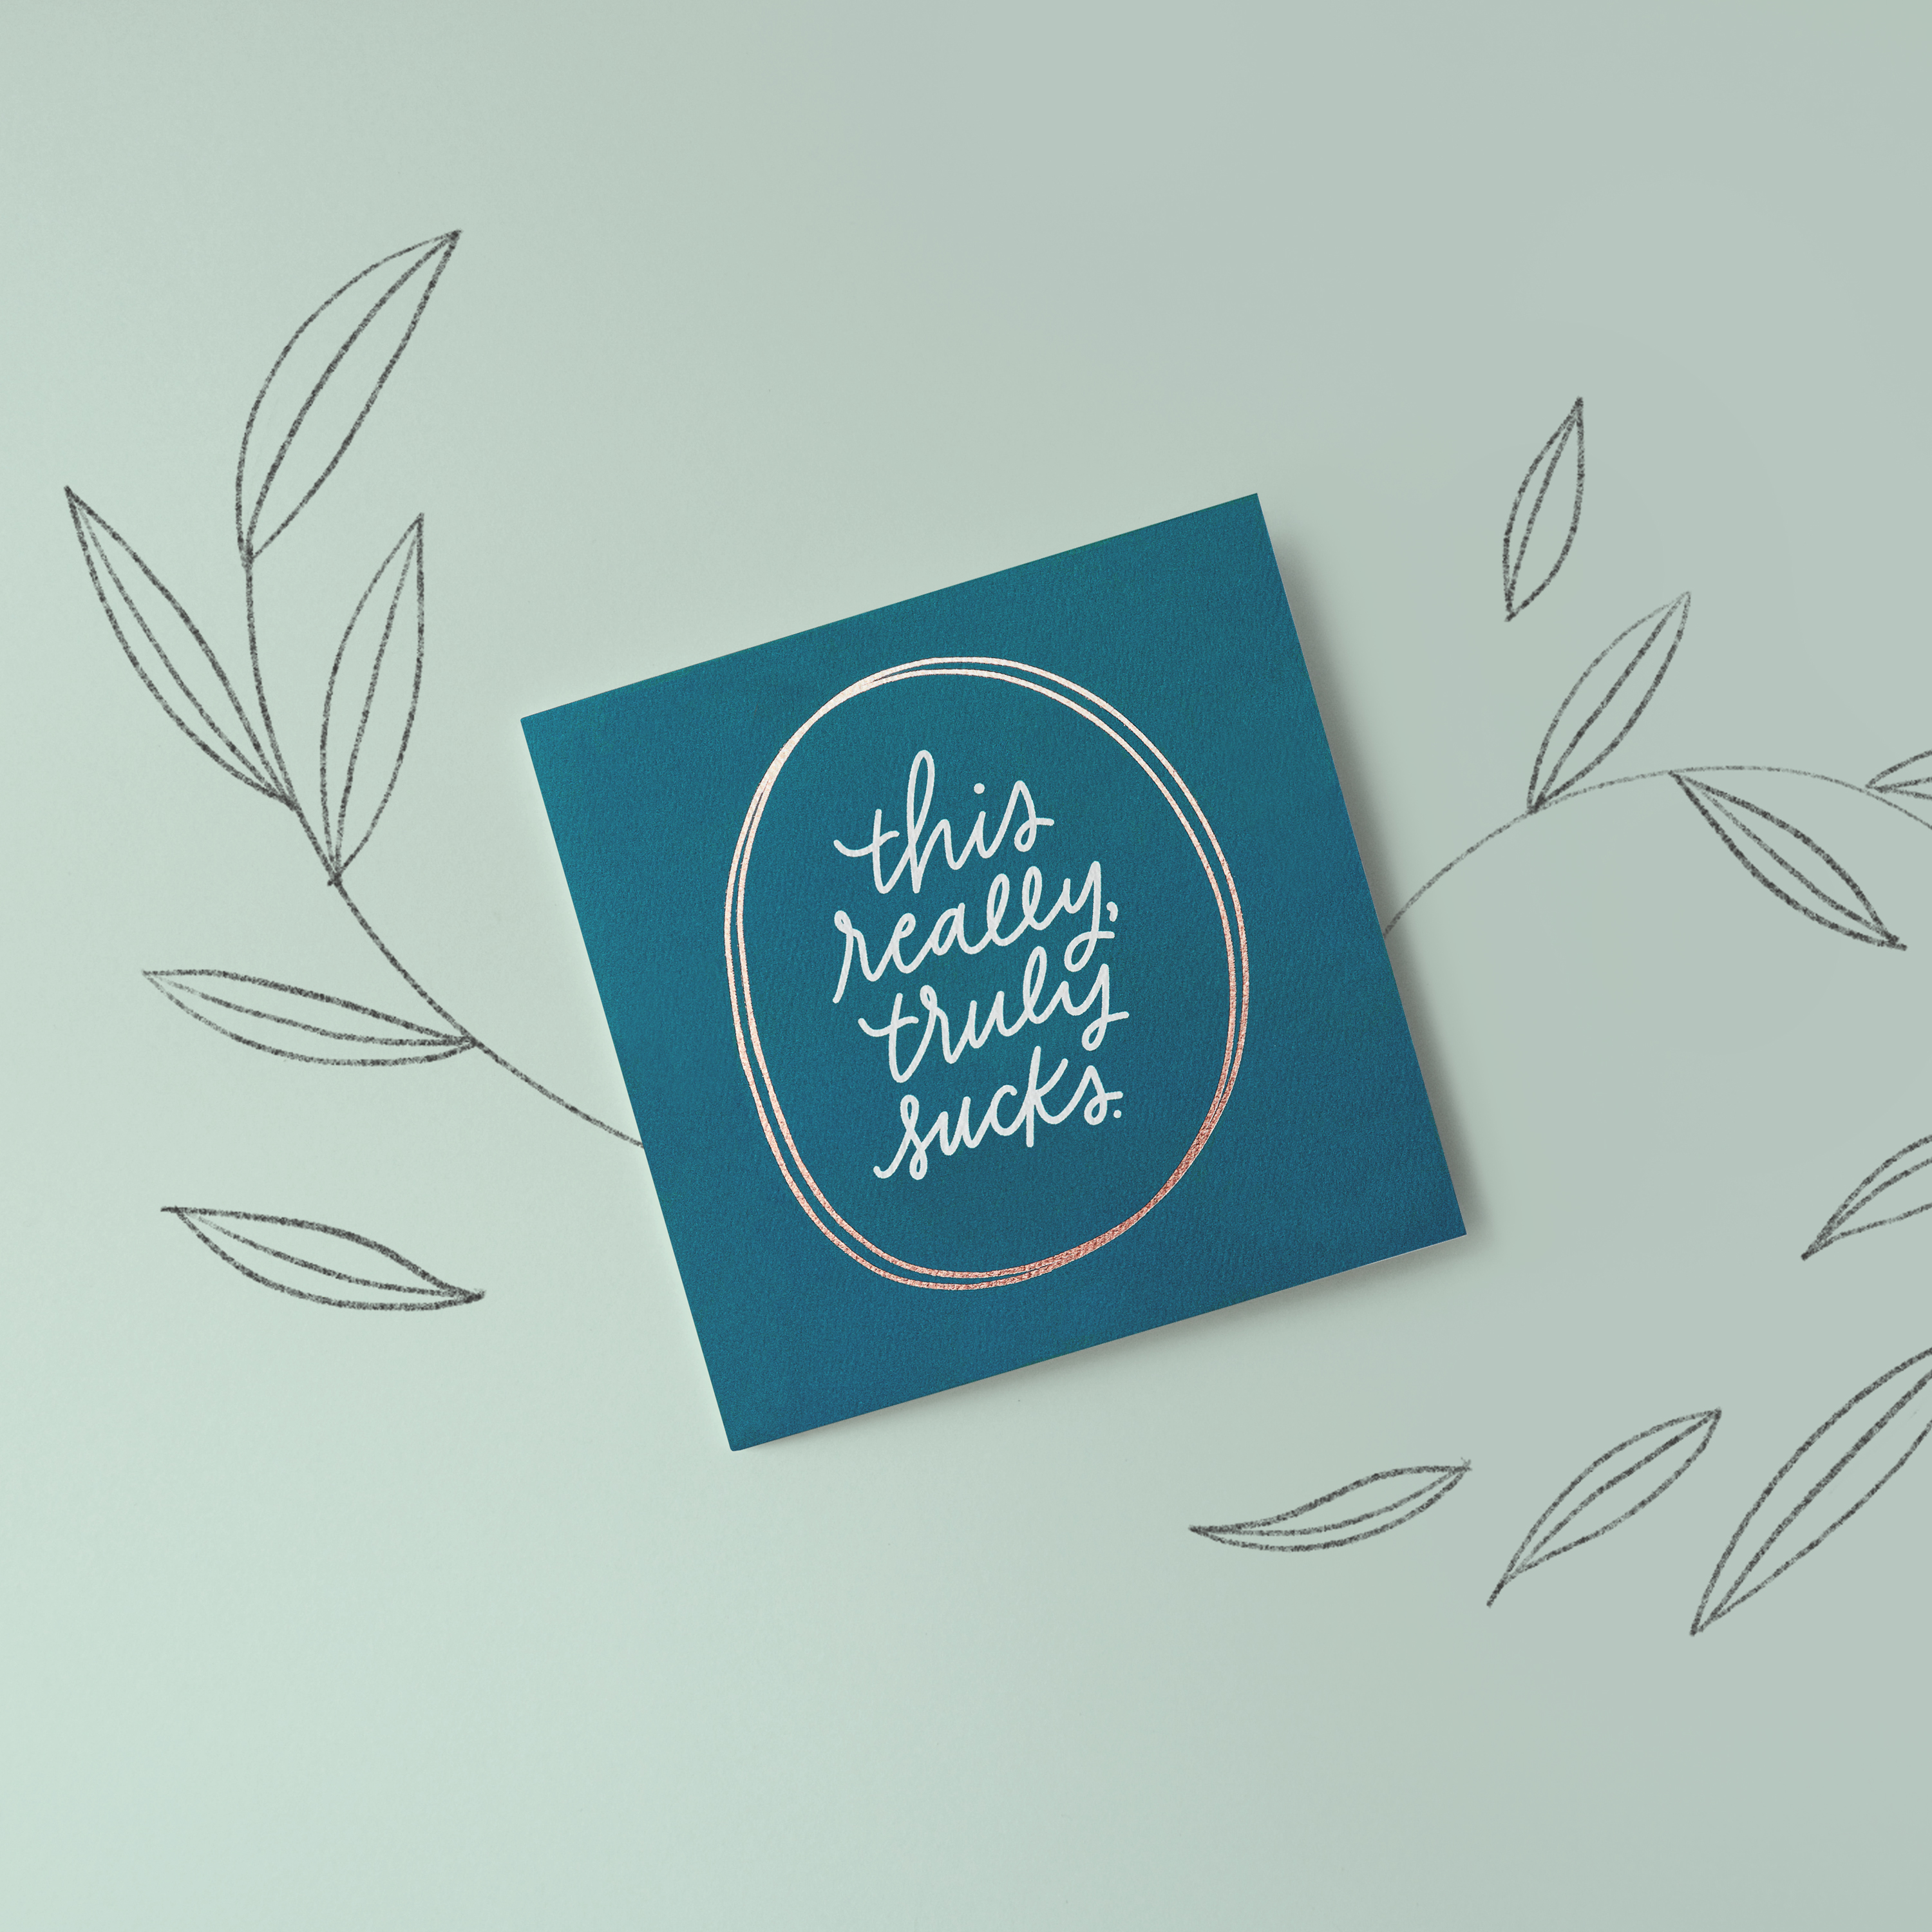 Truly Sucks Greeting Card - Sympathy, Thinking of You, Support image